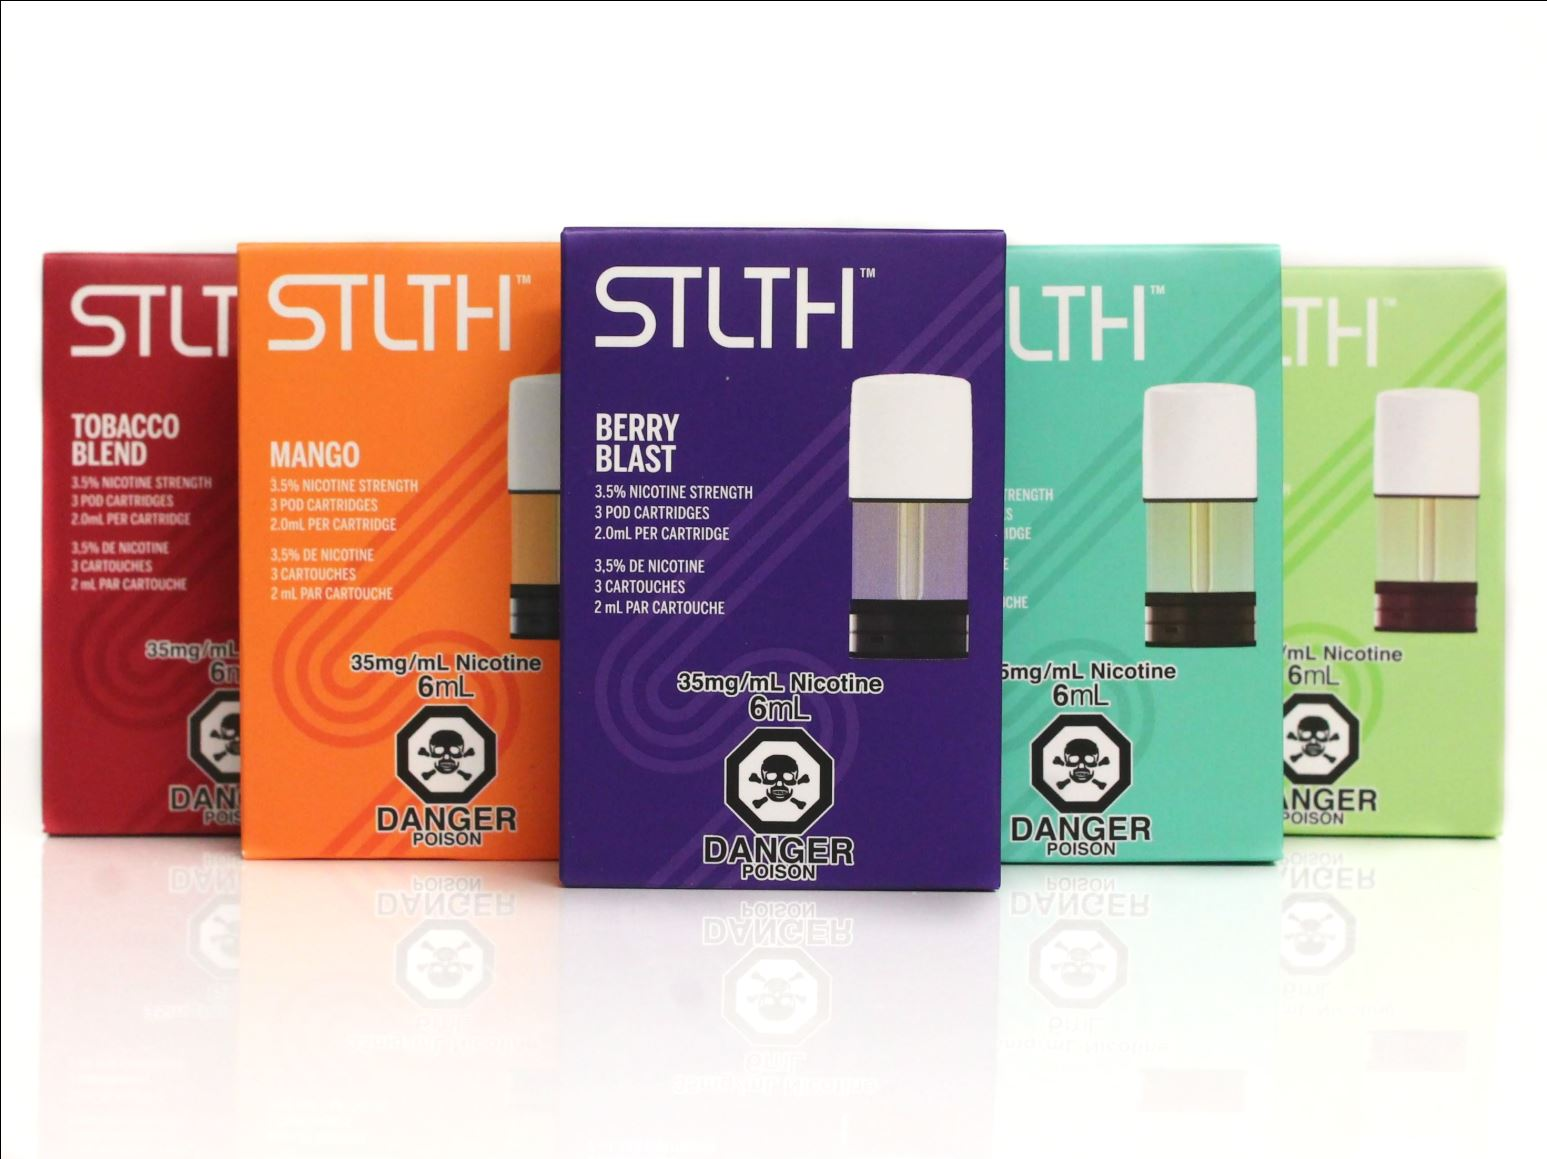 STLTH Pod Packs